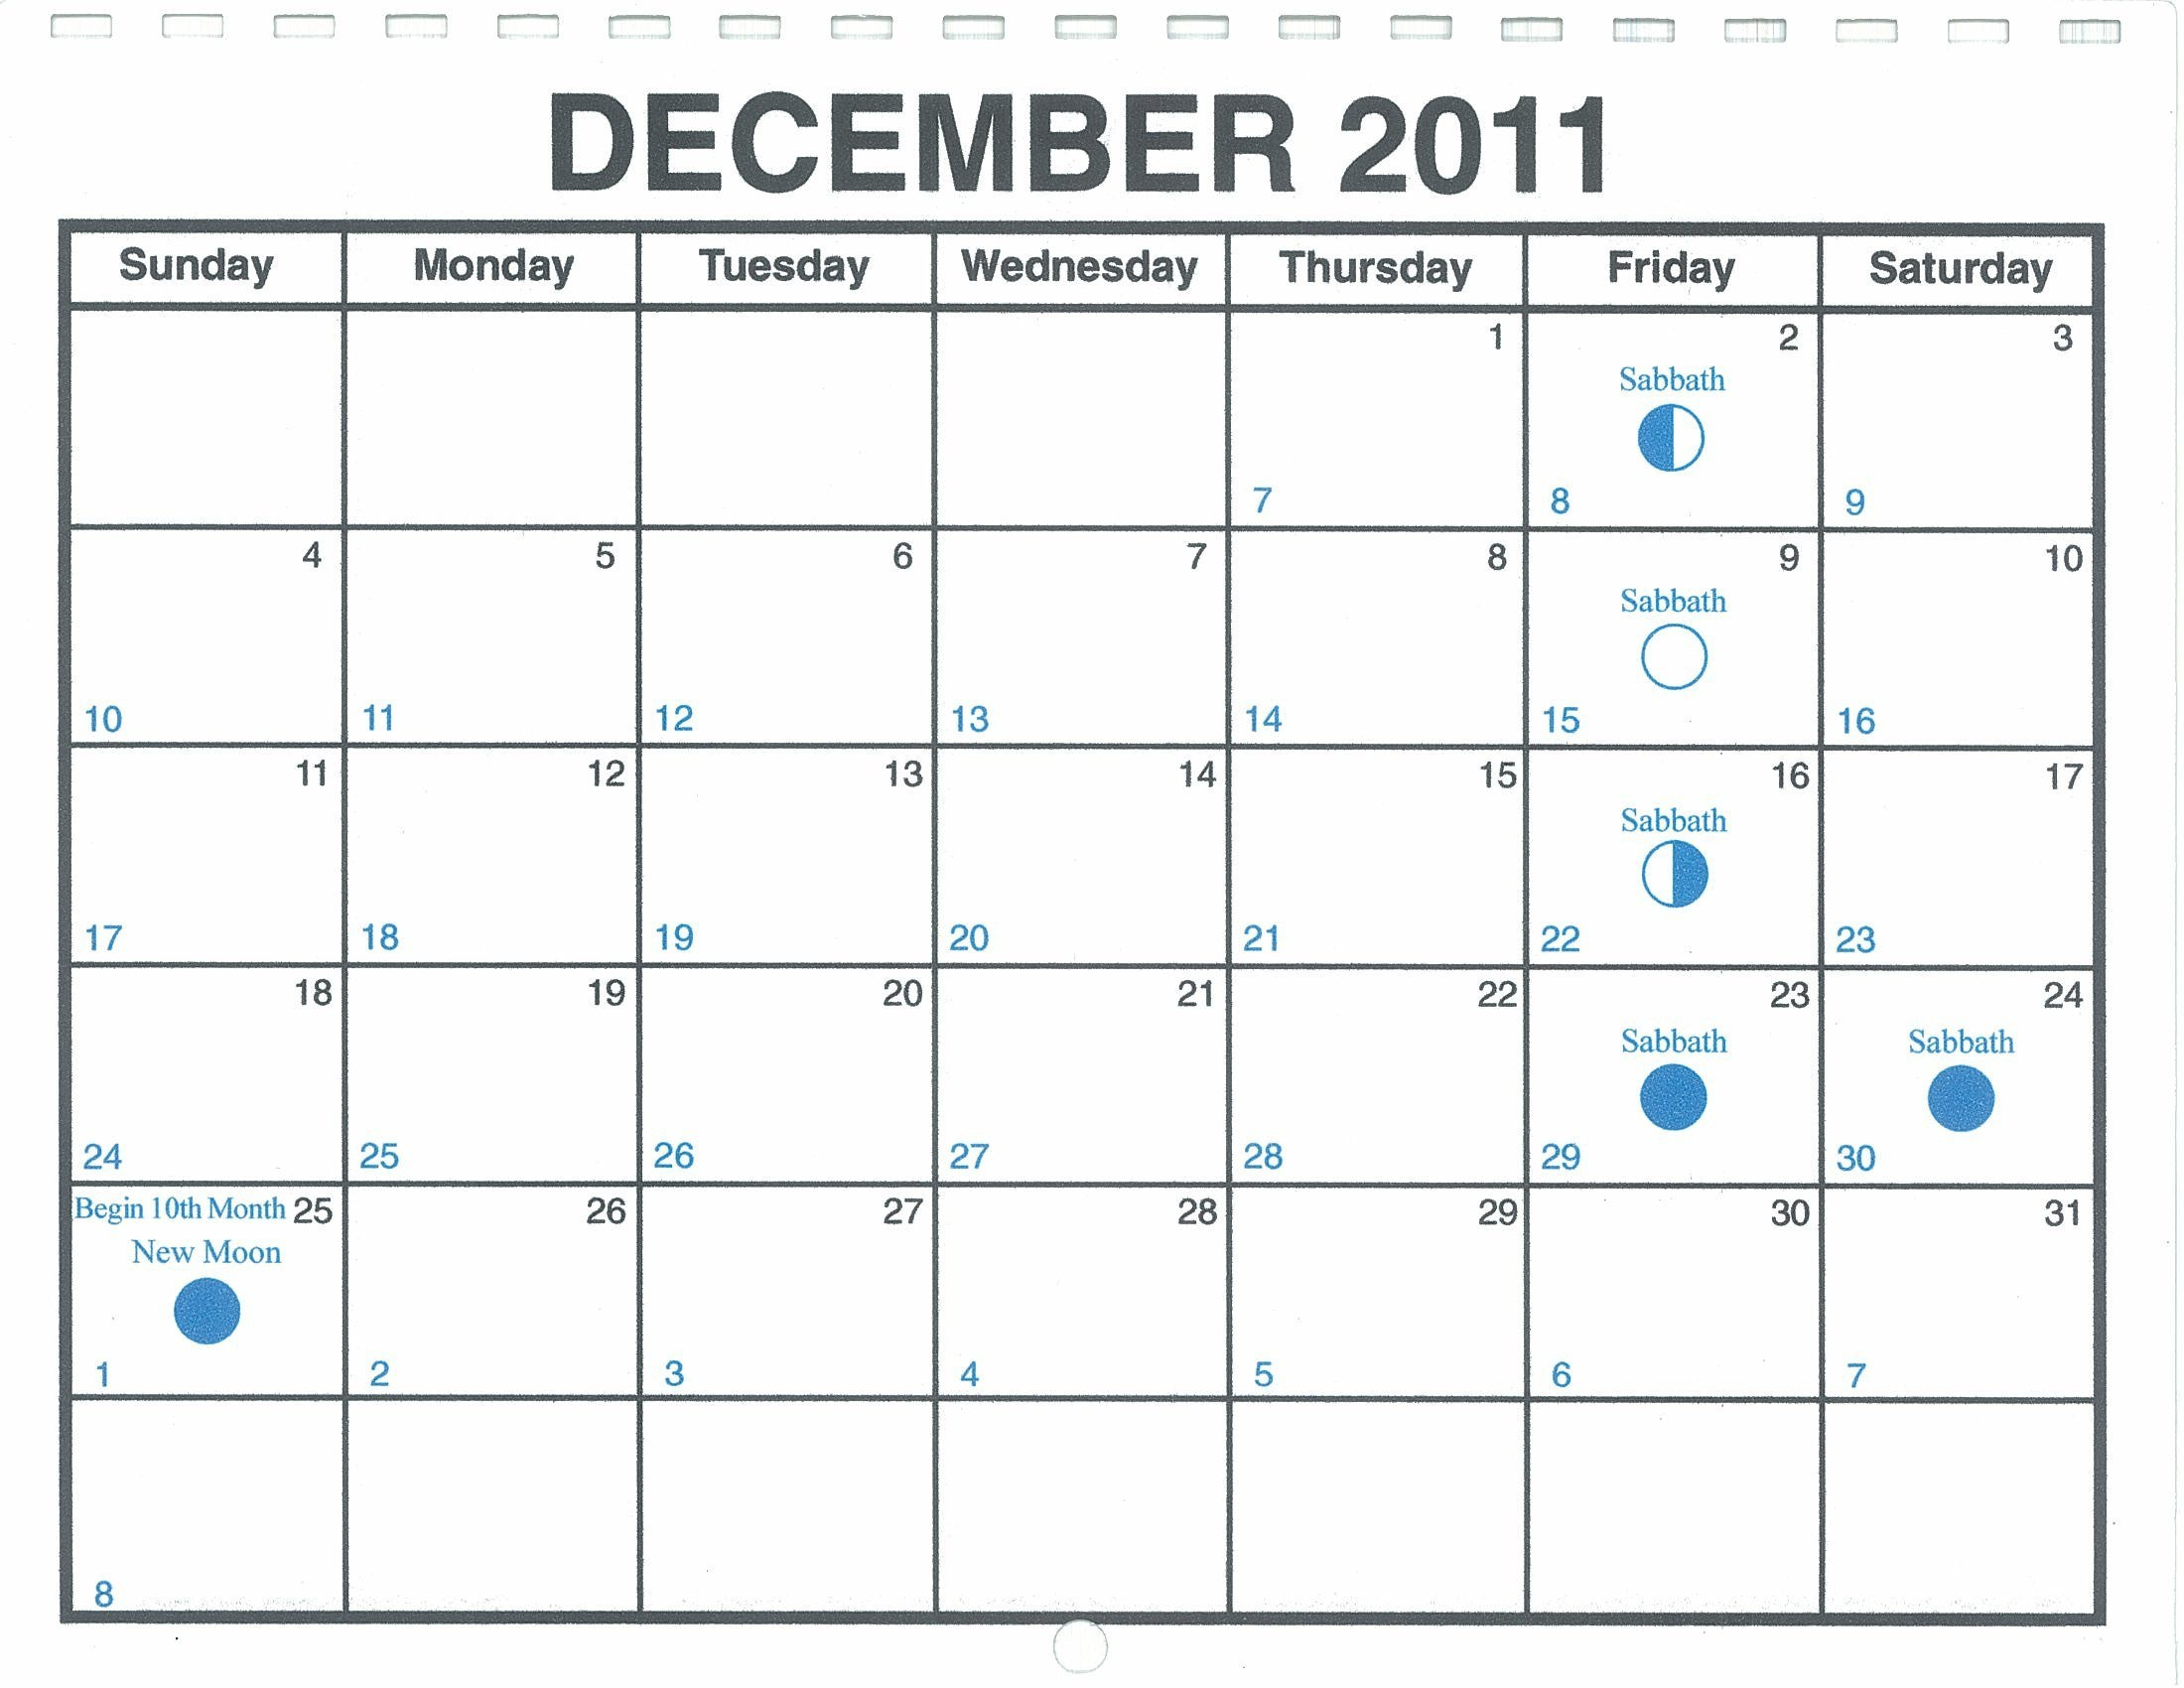 2011 Yearly Calendar Template Word Free Invoice Template Microsoft Word Templates December 2011 Calendar Search Results Calendar 2015